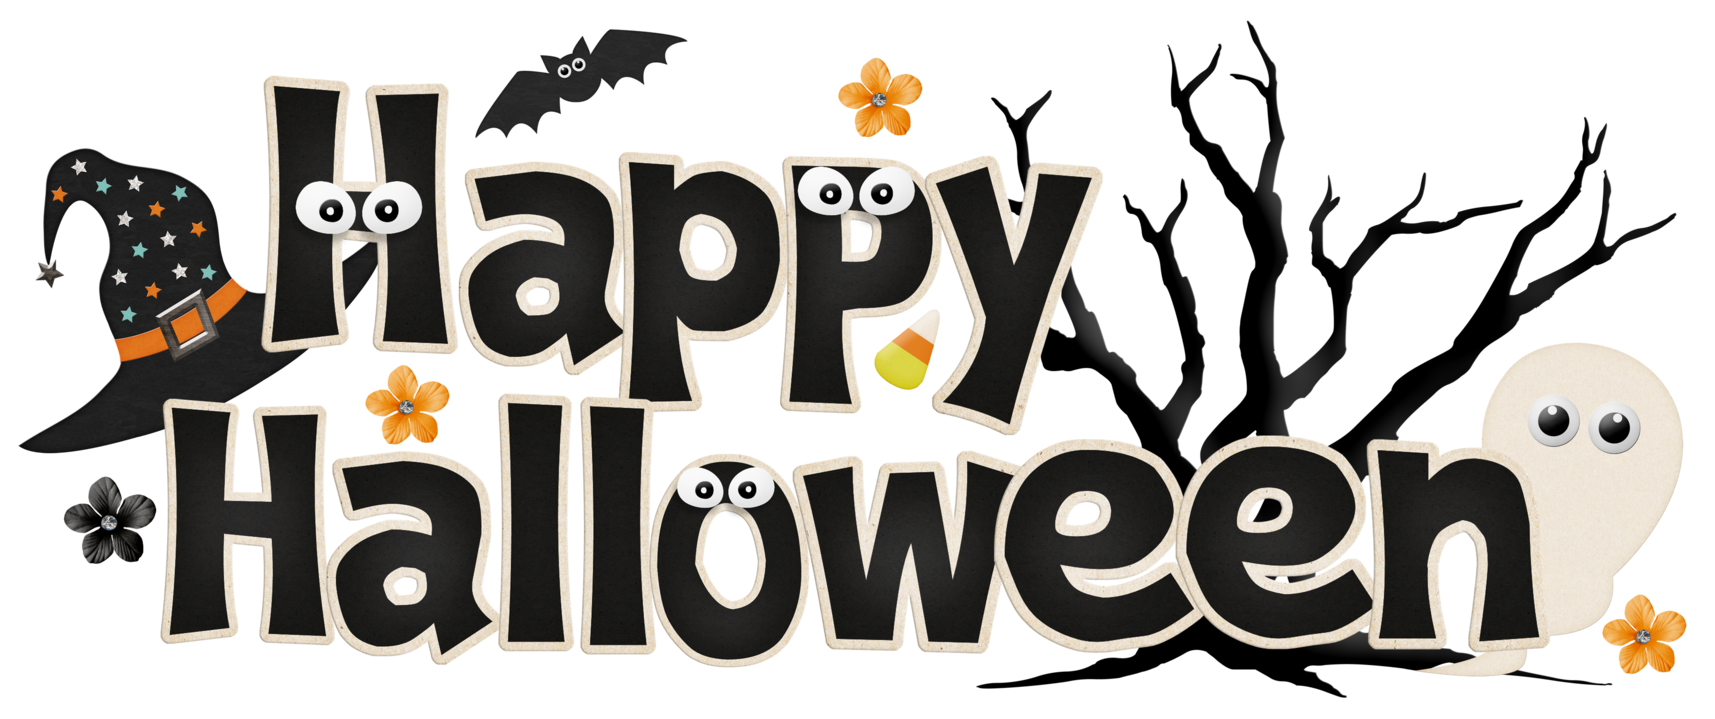 Month of october clipart free clipart images clipartwiz 2 clipartix.